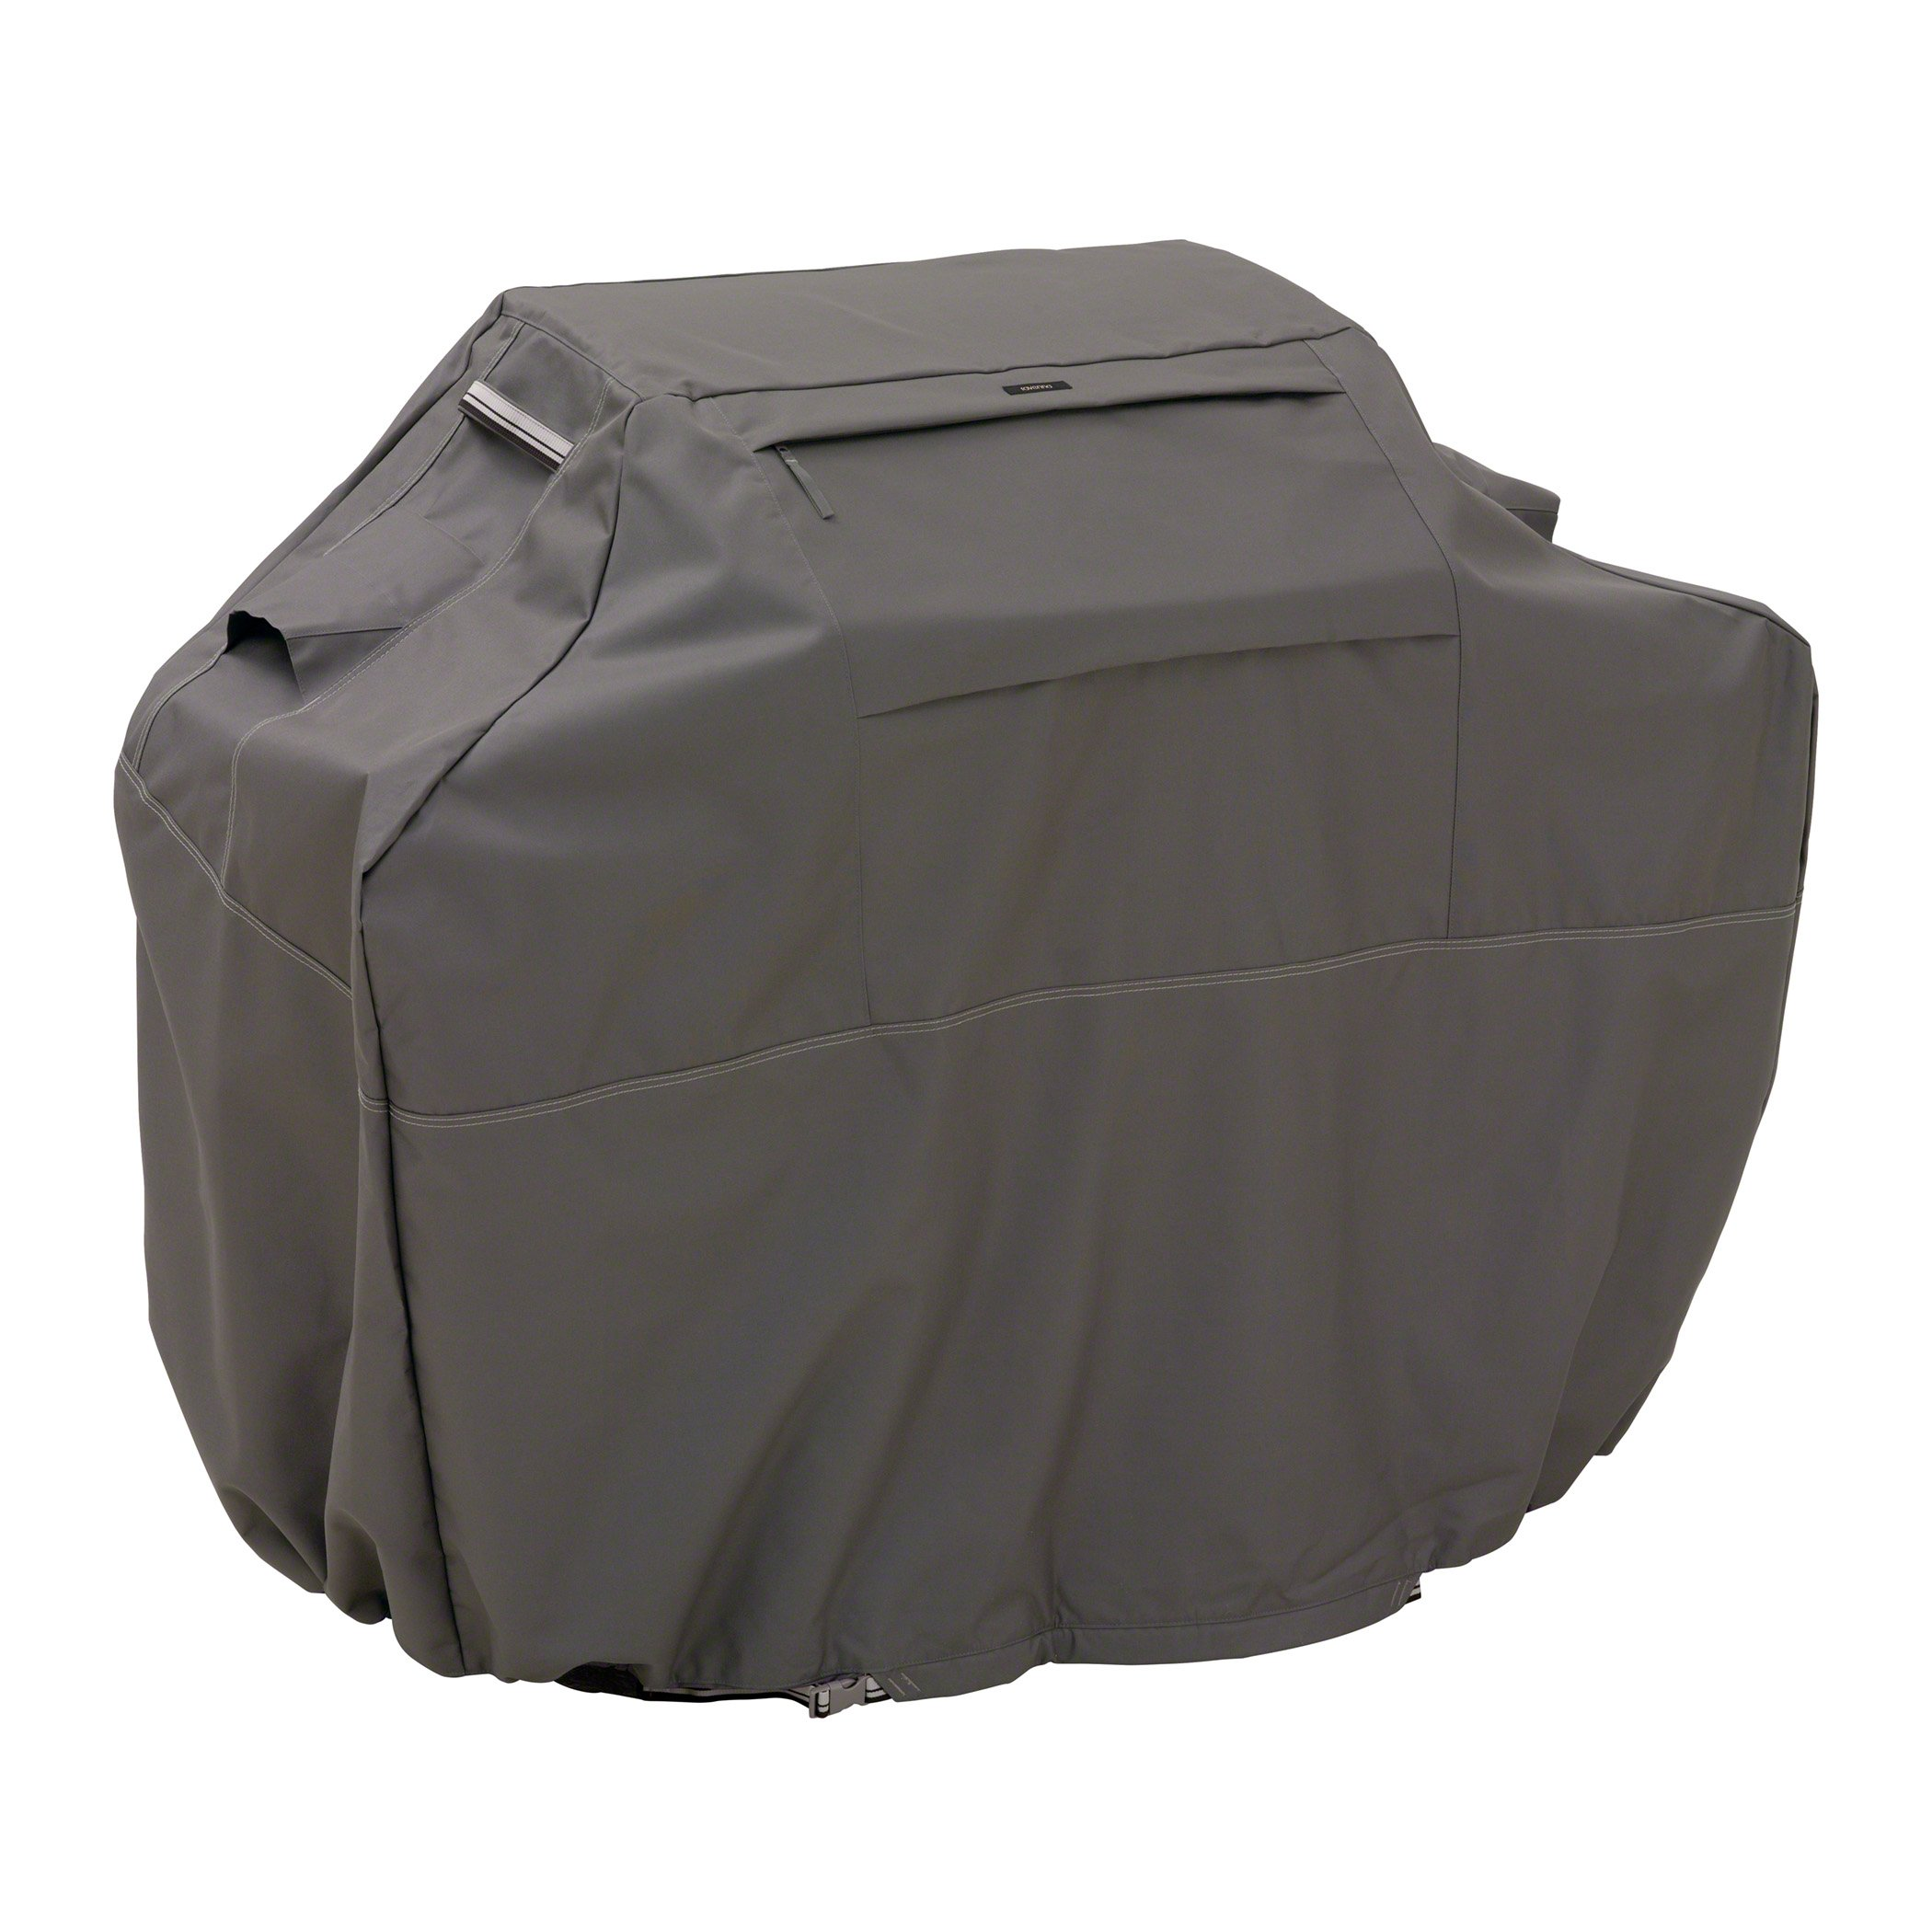 Classic Accessories Ravenna Grill Cover, X-Large